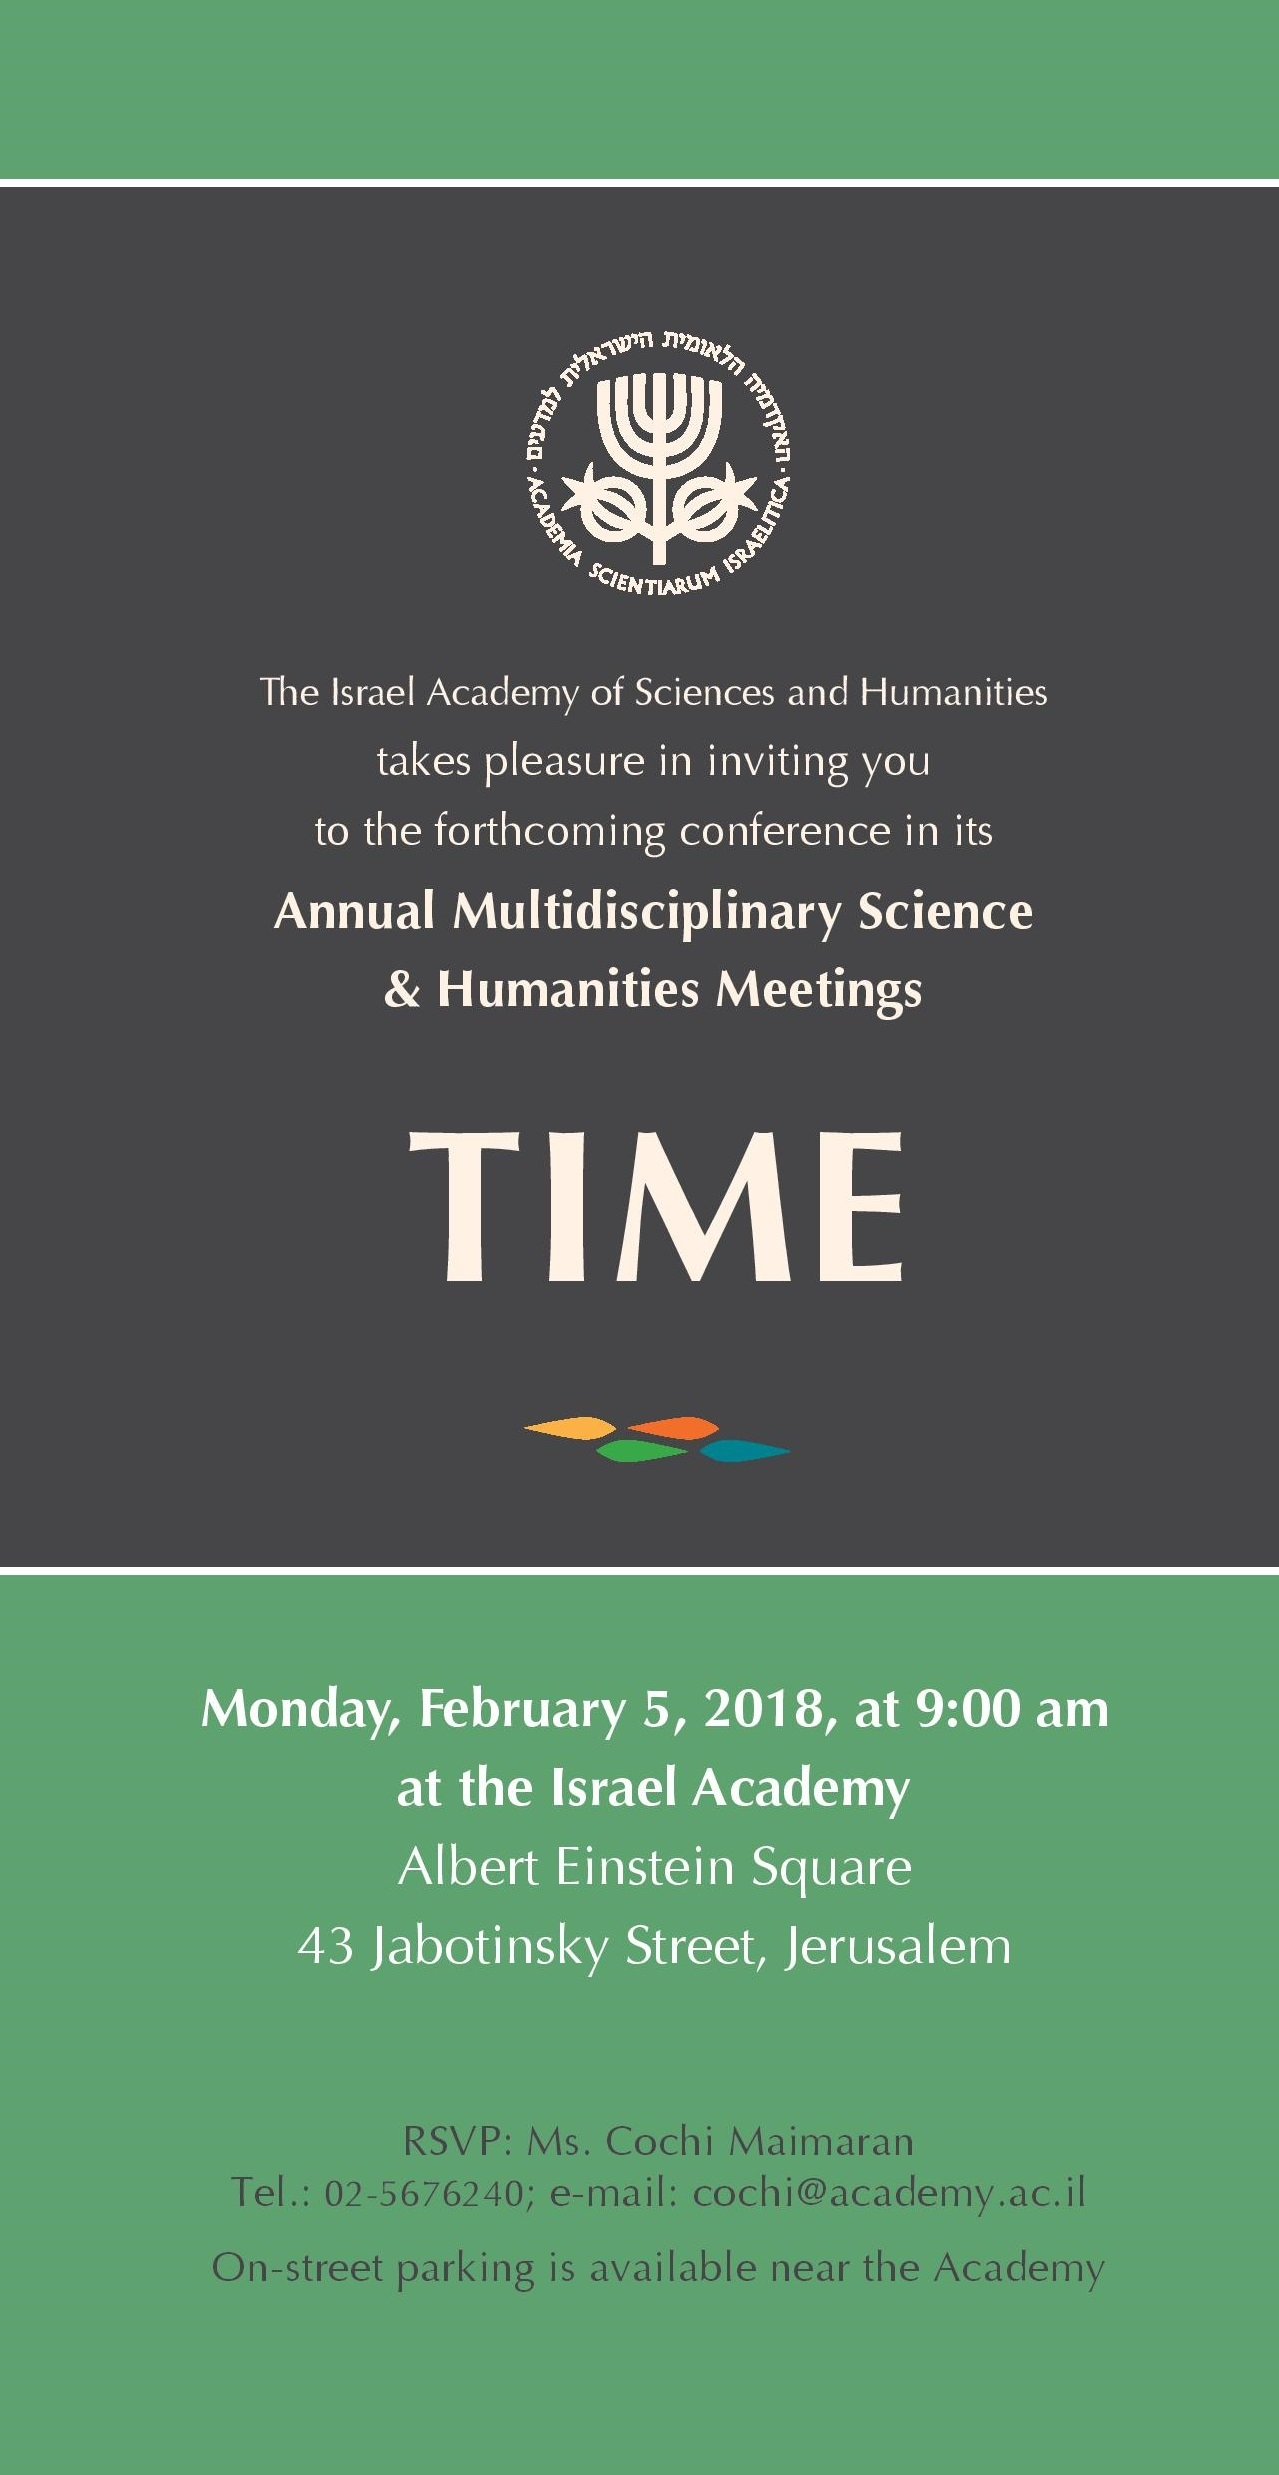 Annual Multidisciplinary Science & Humanities Meetings: TIME